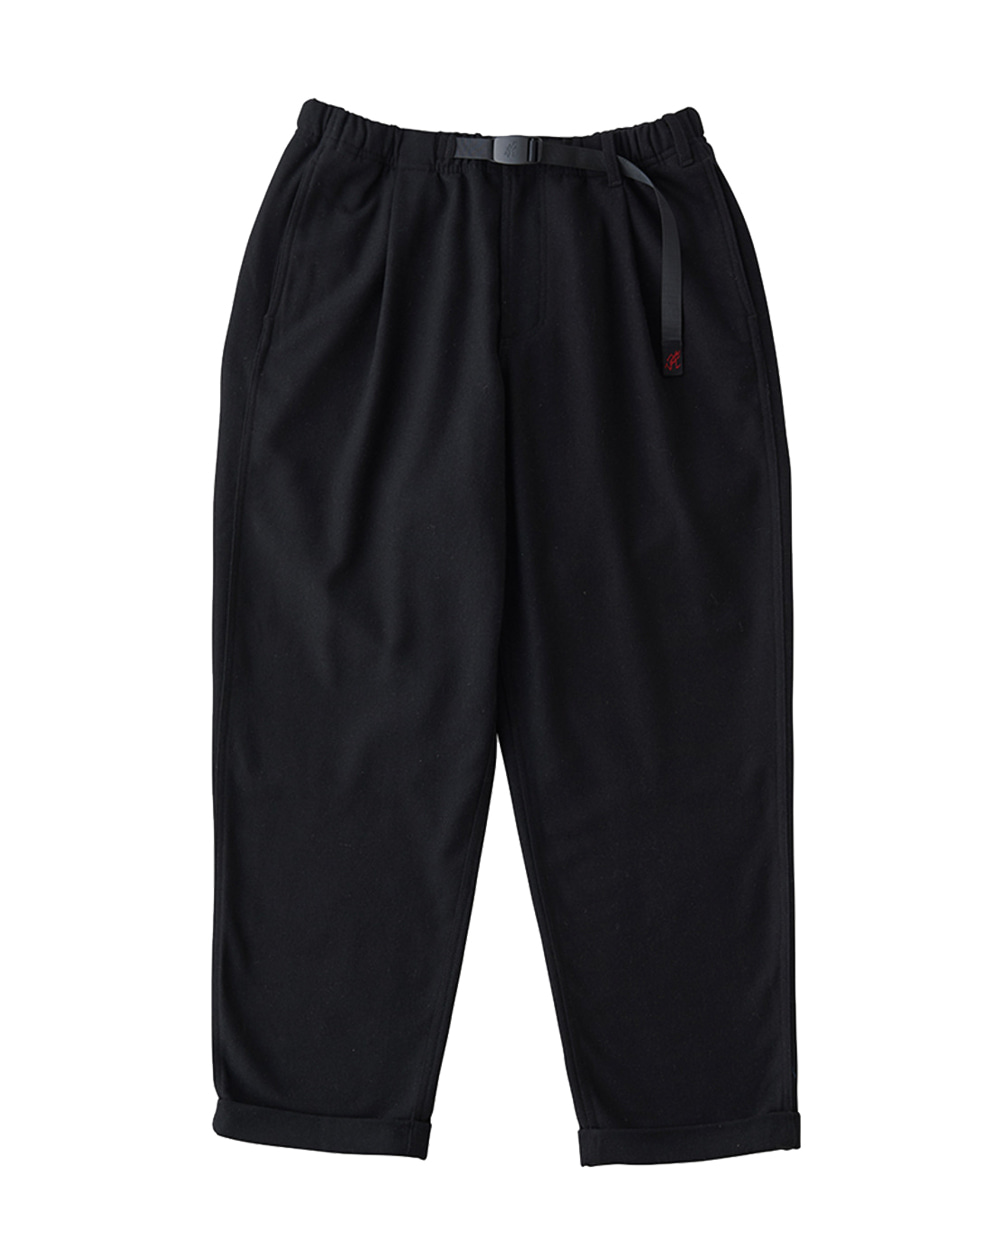 그라미치 WOOL BLEND TUCK TAPERED PANTS (Black)